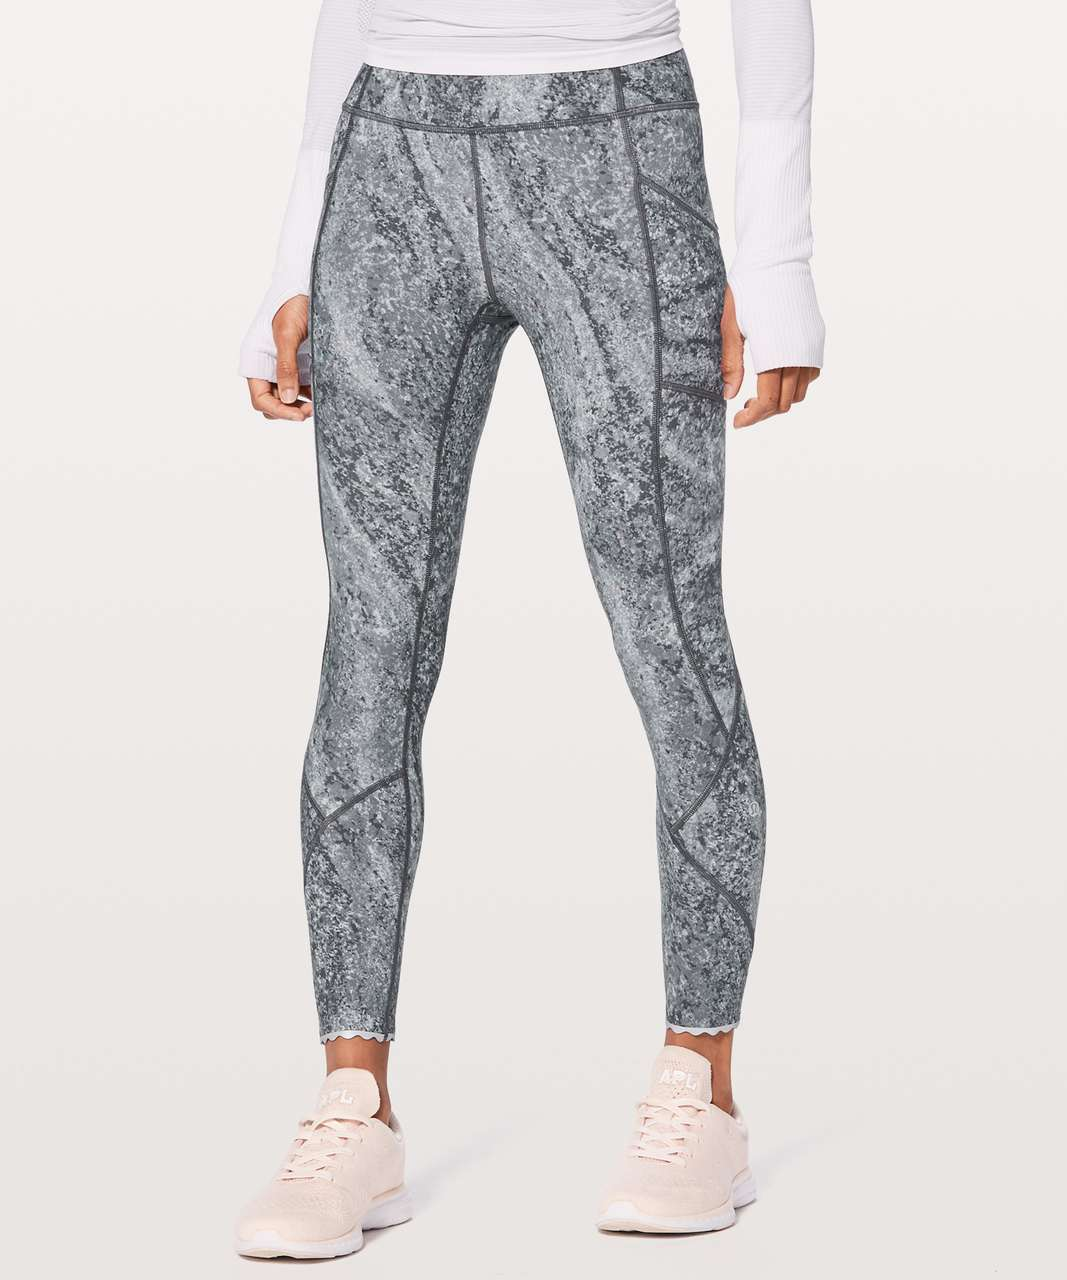 Lululemon Tight Stuff Tight II - Area Ice Grey